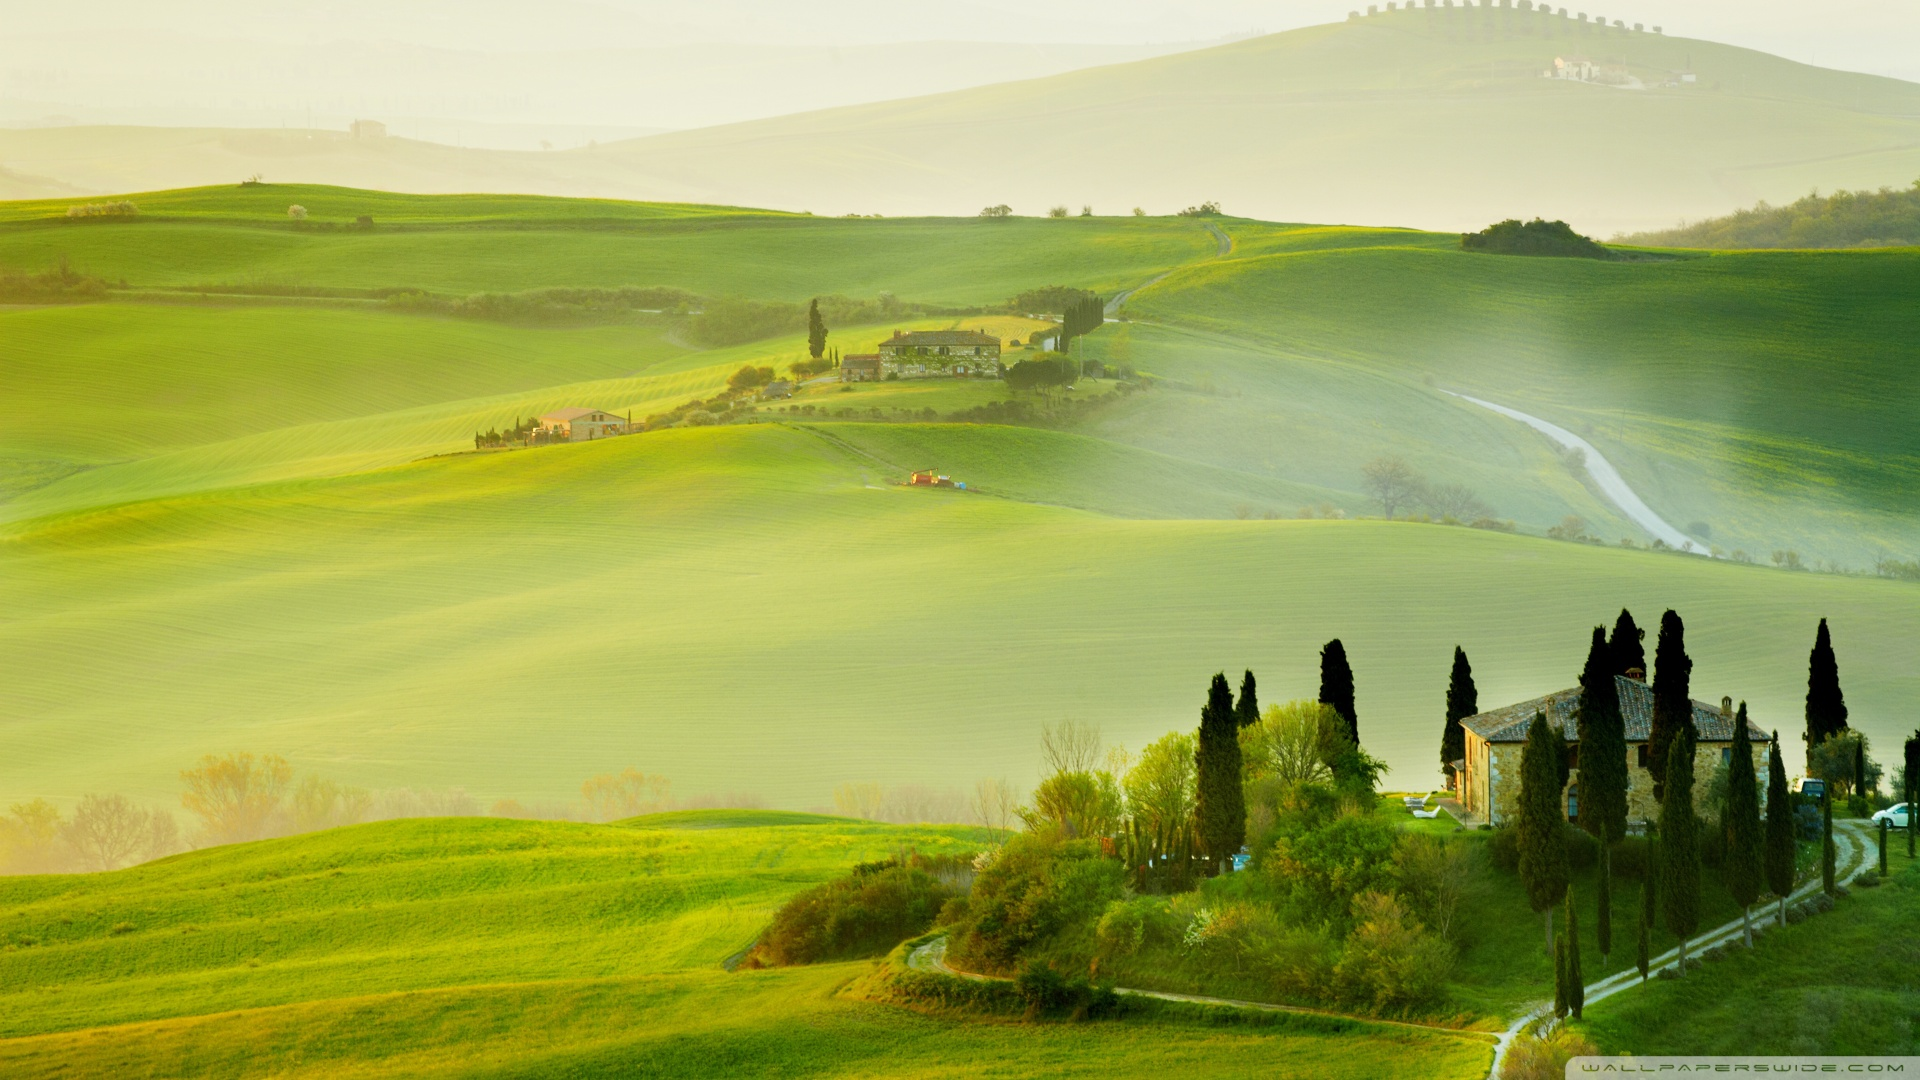 tuscany_spring_landscape-wallpaper-1920x1080